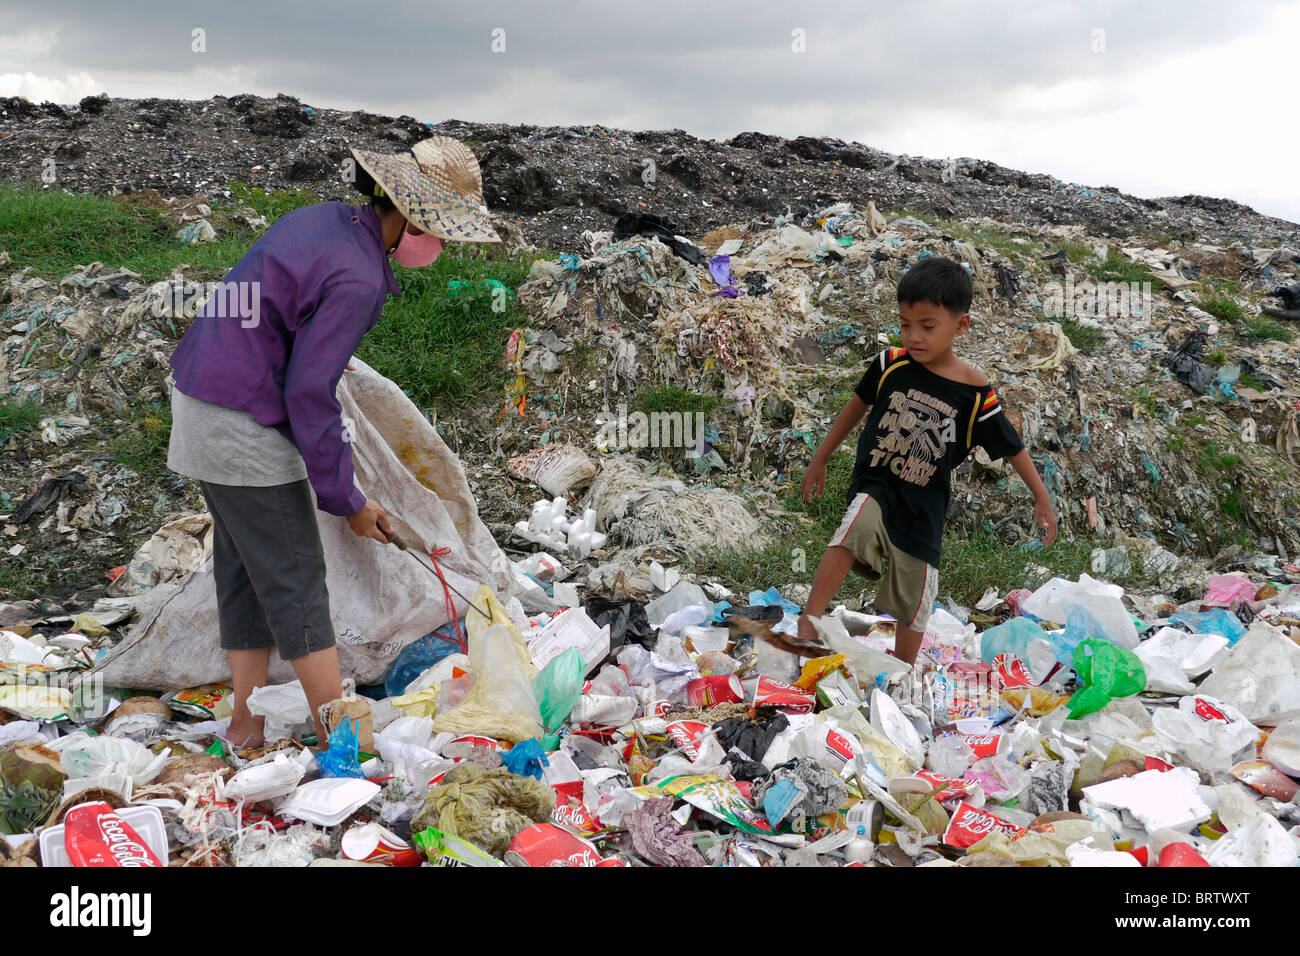 CAMBODIA Scavenger Soun Srey Thouch searching for recyclable materials on Phnom Penh's Mean Caeay garbage dump, - Stock Image